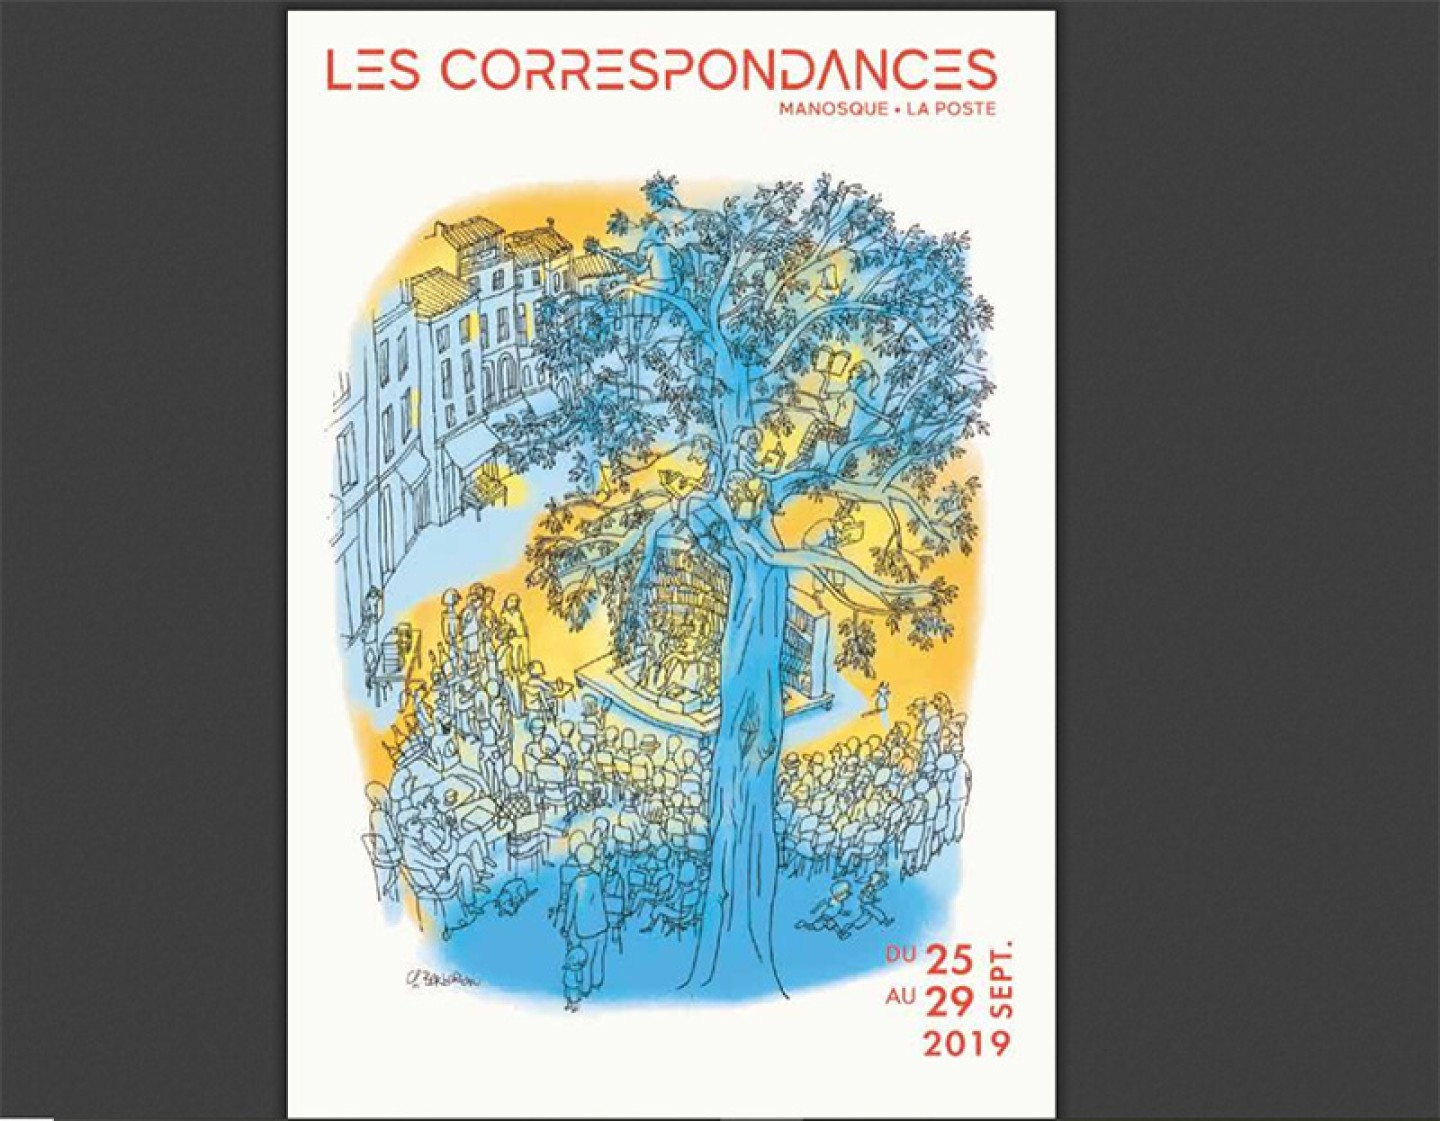 Les correspondances de Manosque 2019